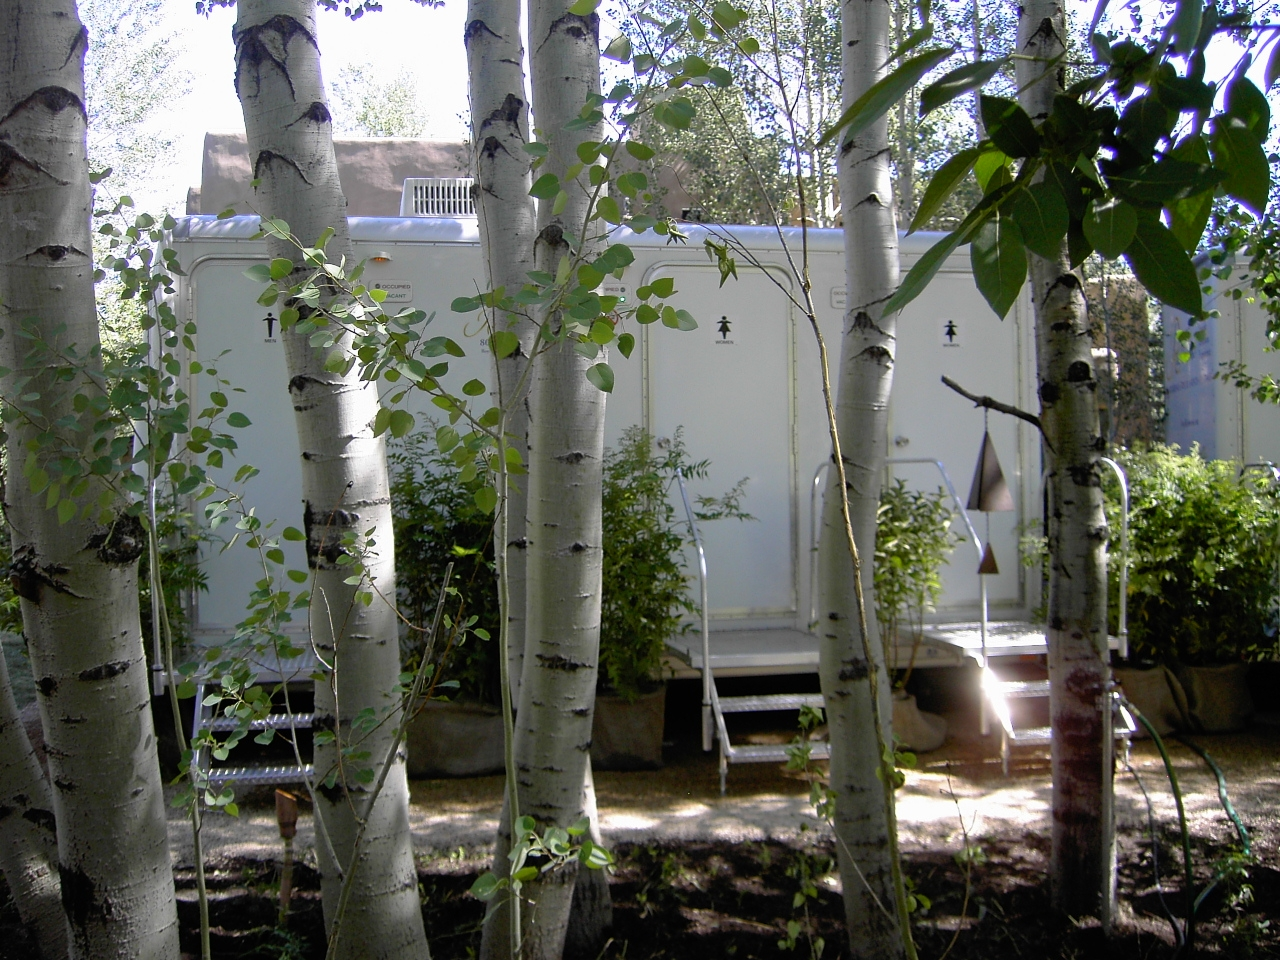 utah-portable-restrooms-at-sunvalley-ii